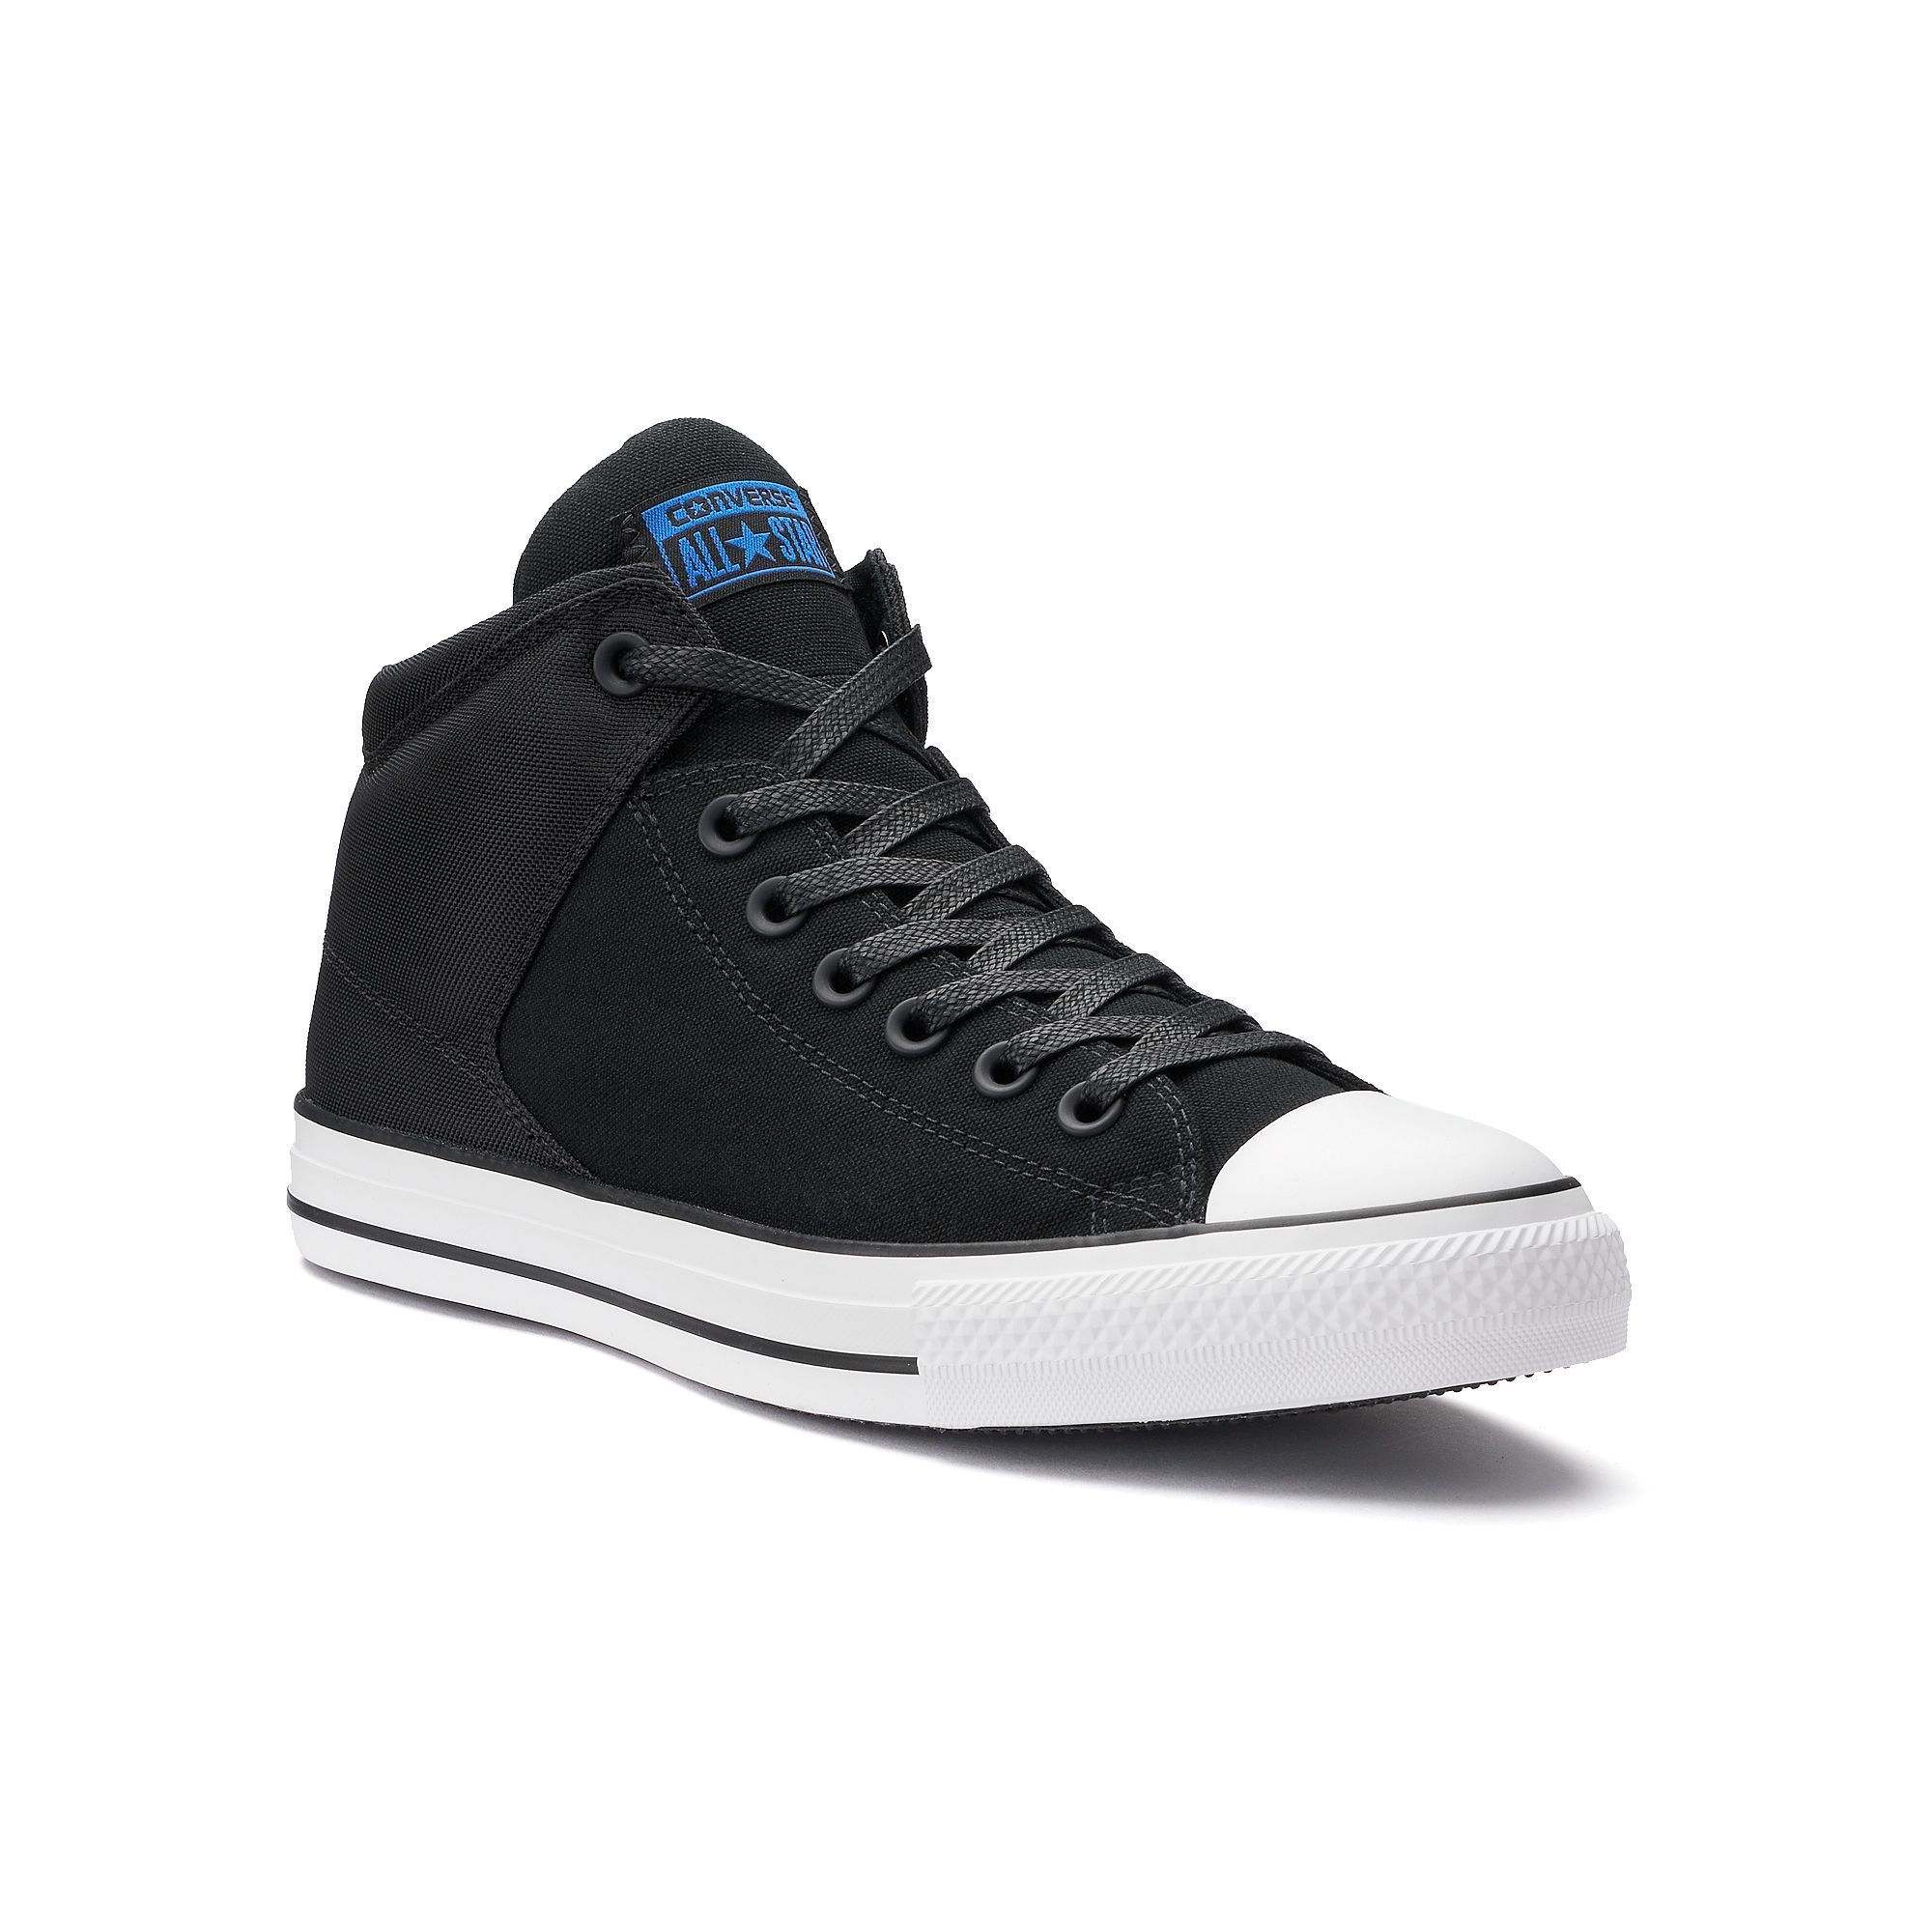 2e7223c90802 Adult Converse Chuck Taylor All Star High Street Sneakers